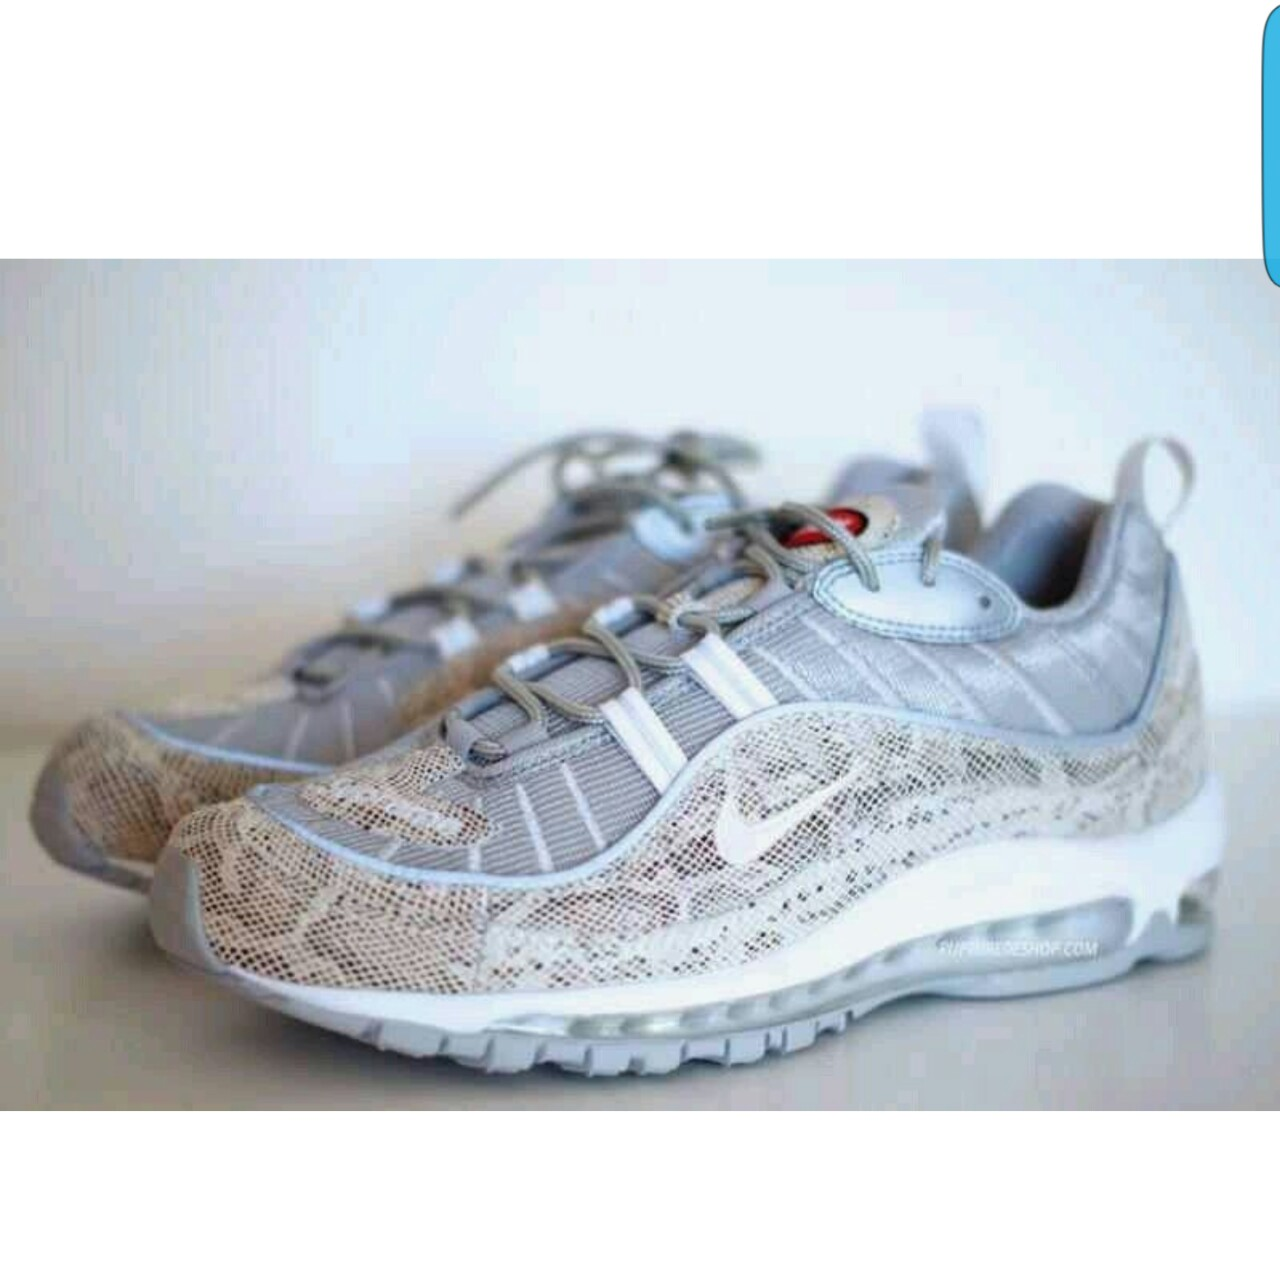 new products c91f8 4b087 Supreme x Nike Air Max 98 Snakeskin US9/UK8/EUR42,5 ...